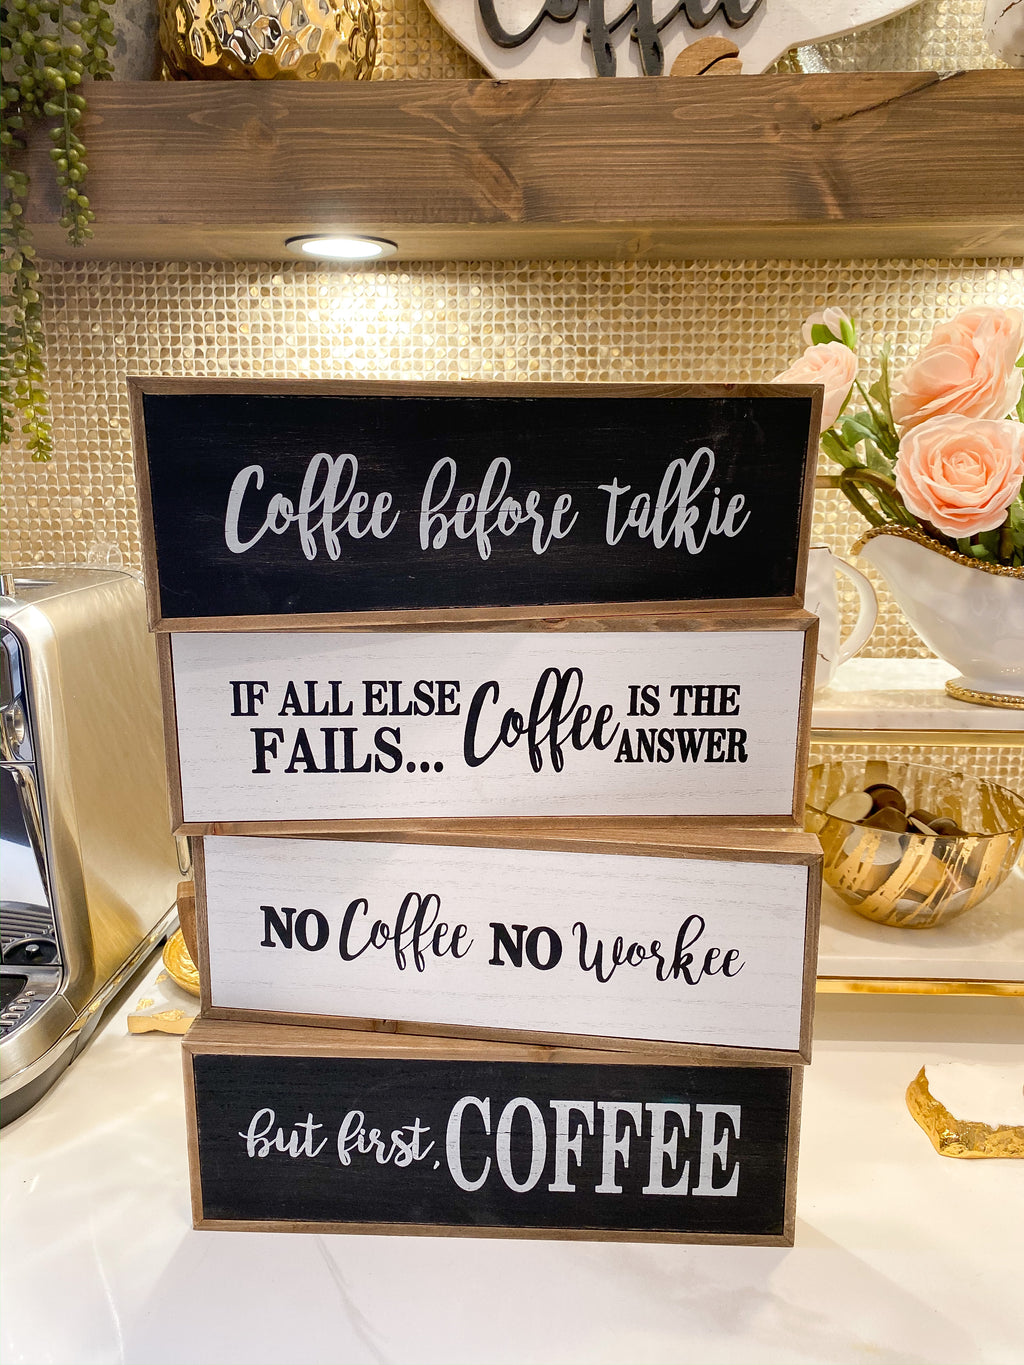 Black and White Wooden Coffee Signs-Inspire Me! Home Decor